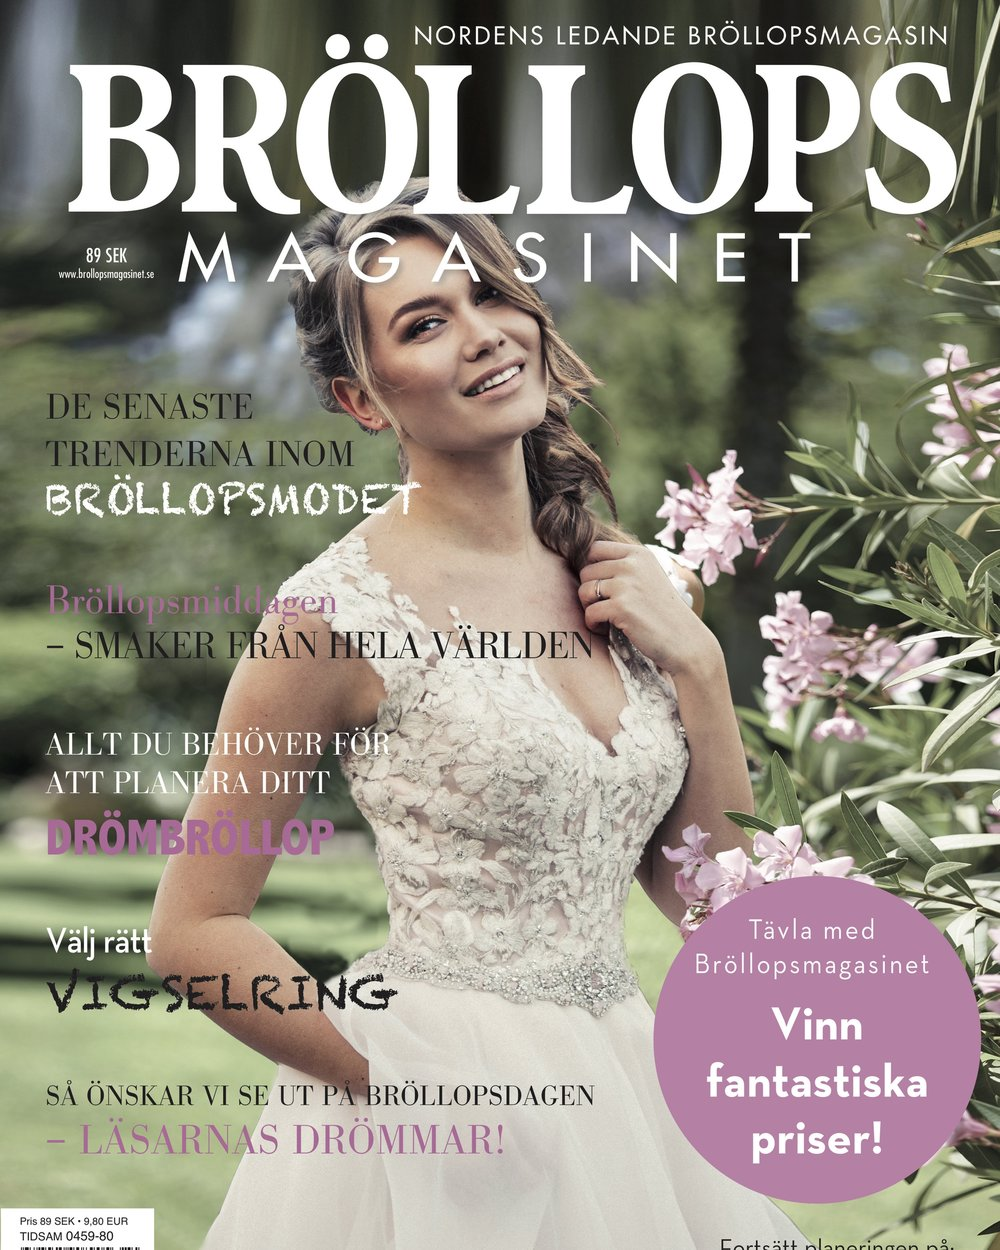 Bröllops Magasinet May 2017